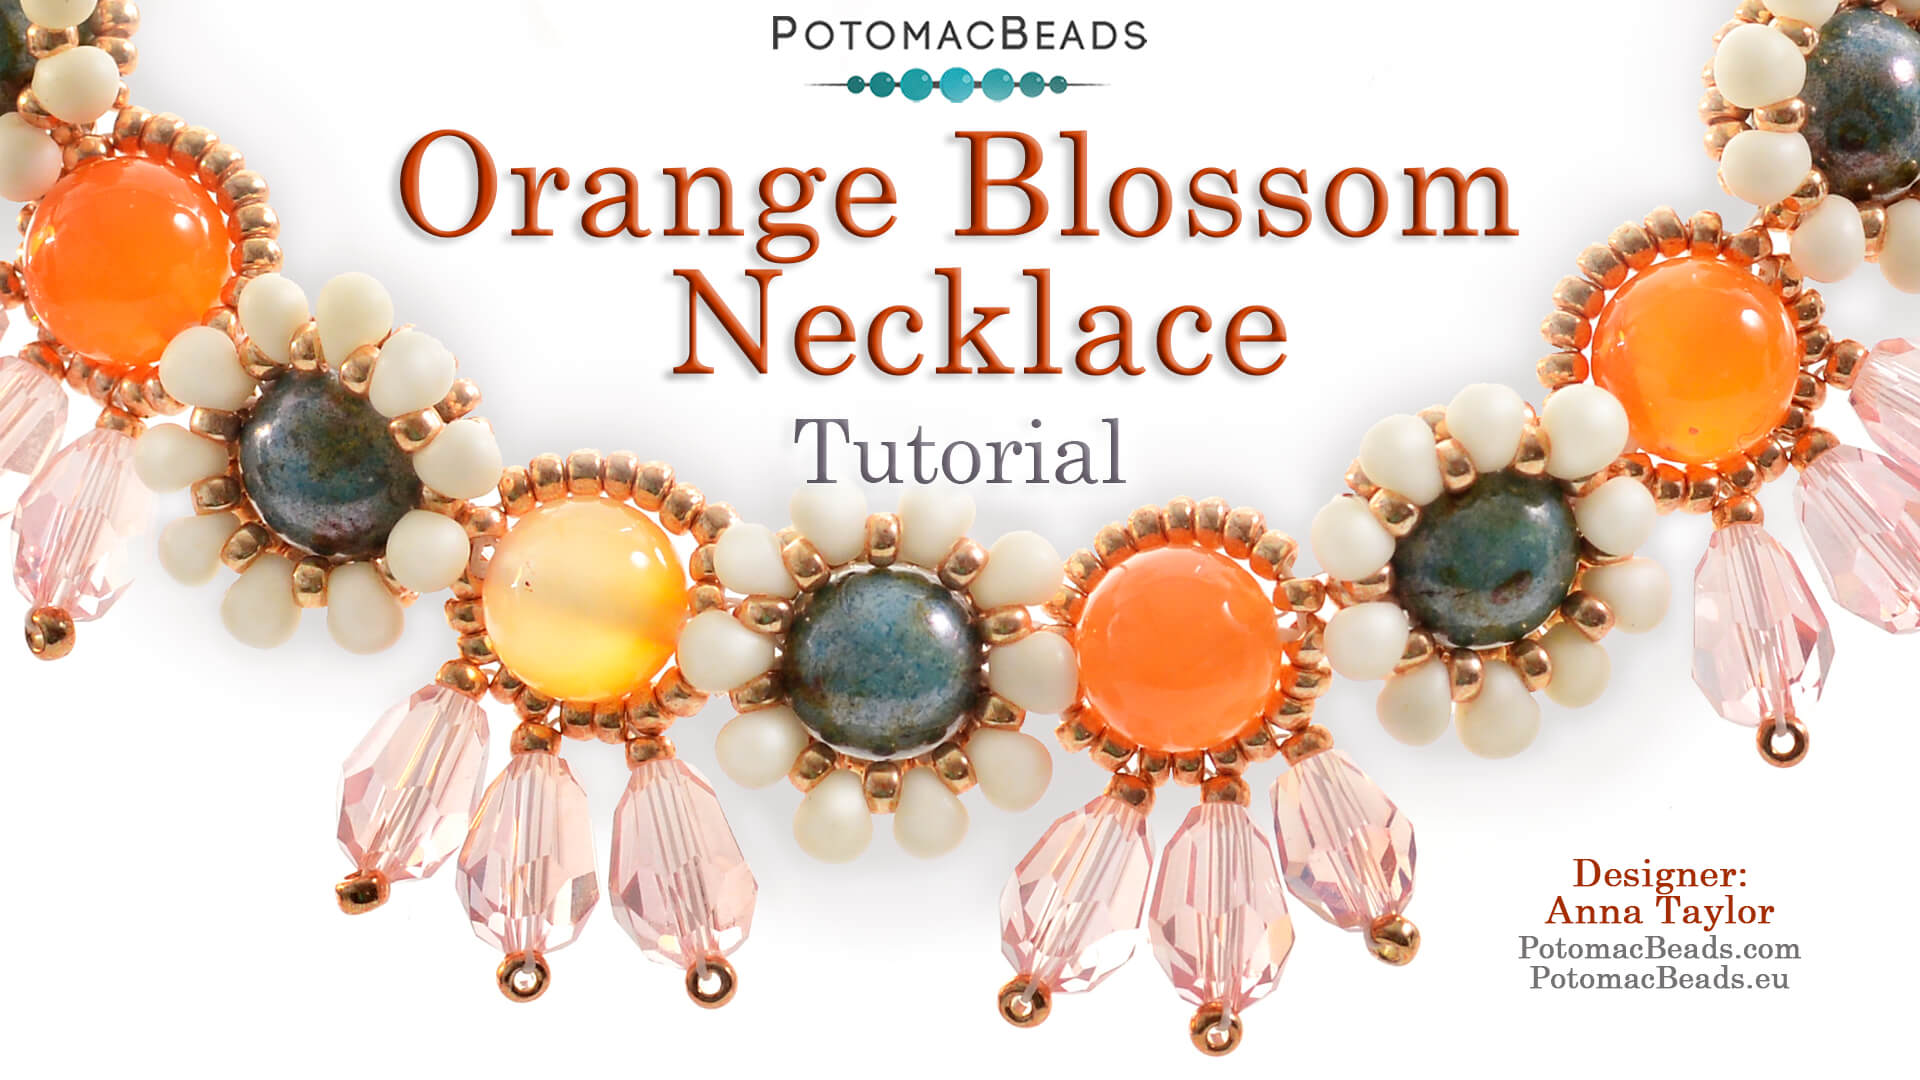 How to Bead / Videos Sorted by Beads / Gemstone Videos / Orange Blossom Necklace Tutorial